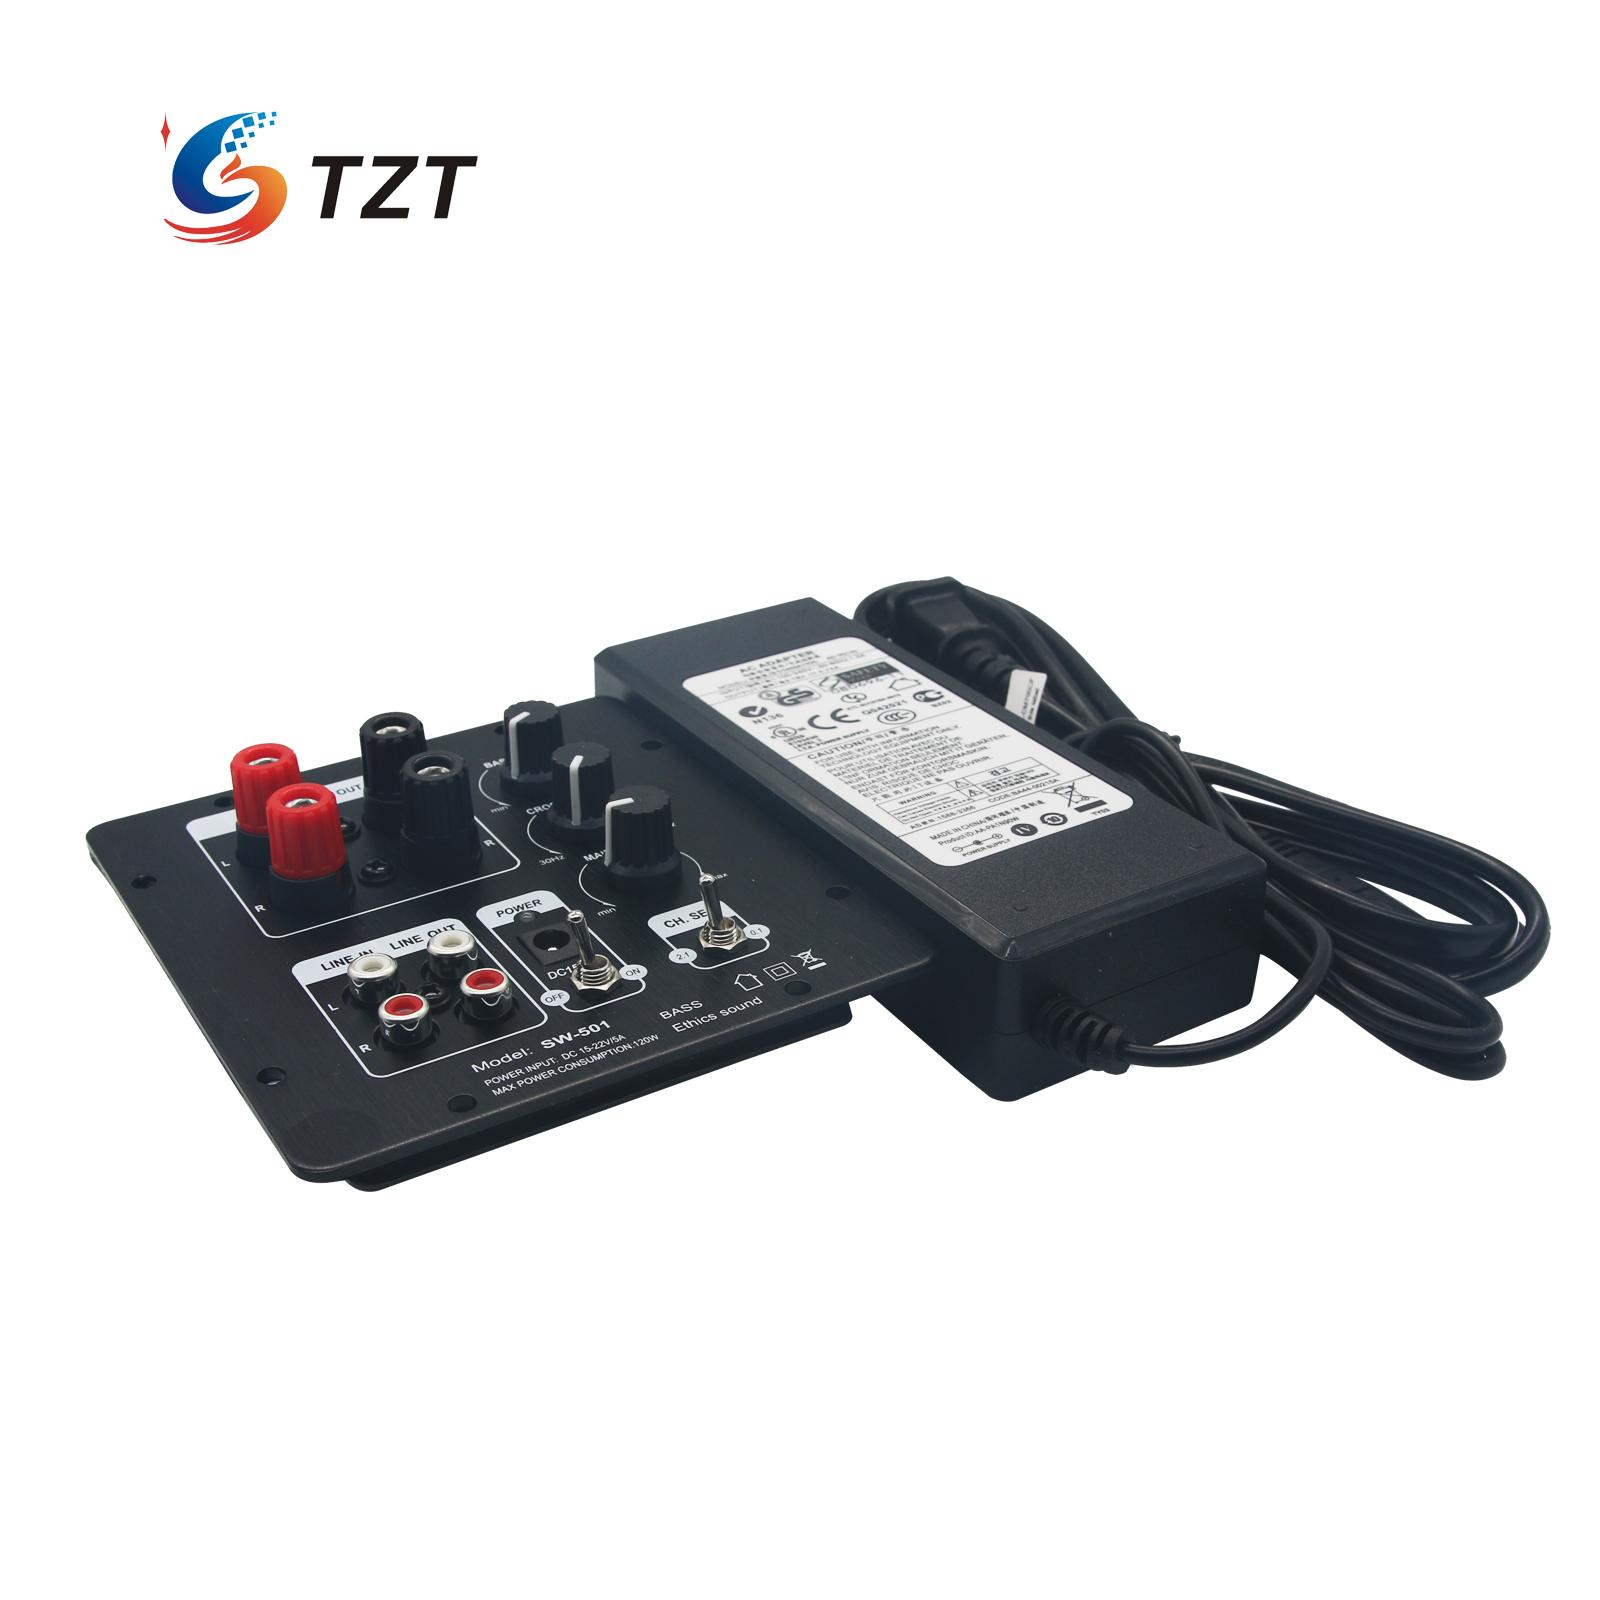 TPA3118 Digital Audio Power Amplifier Board 60W 30Wx2 HIFI Subwoofer Amp with Power Supply